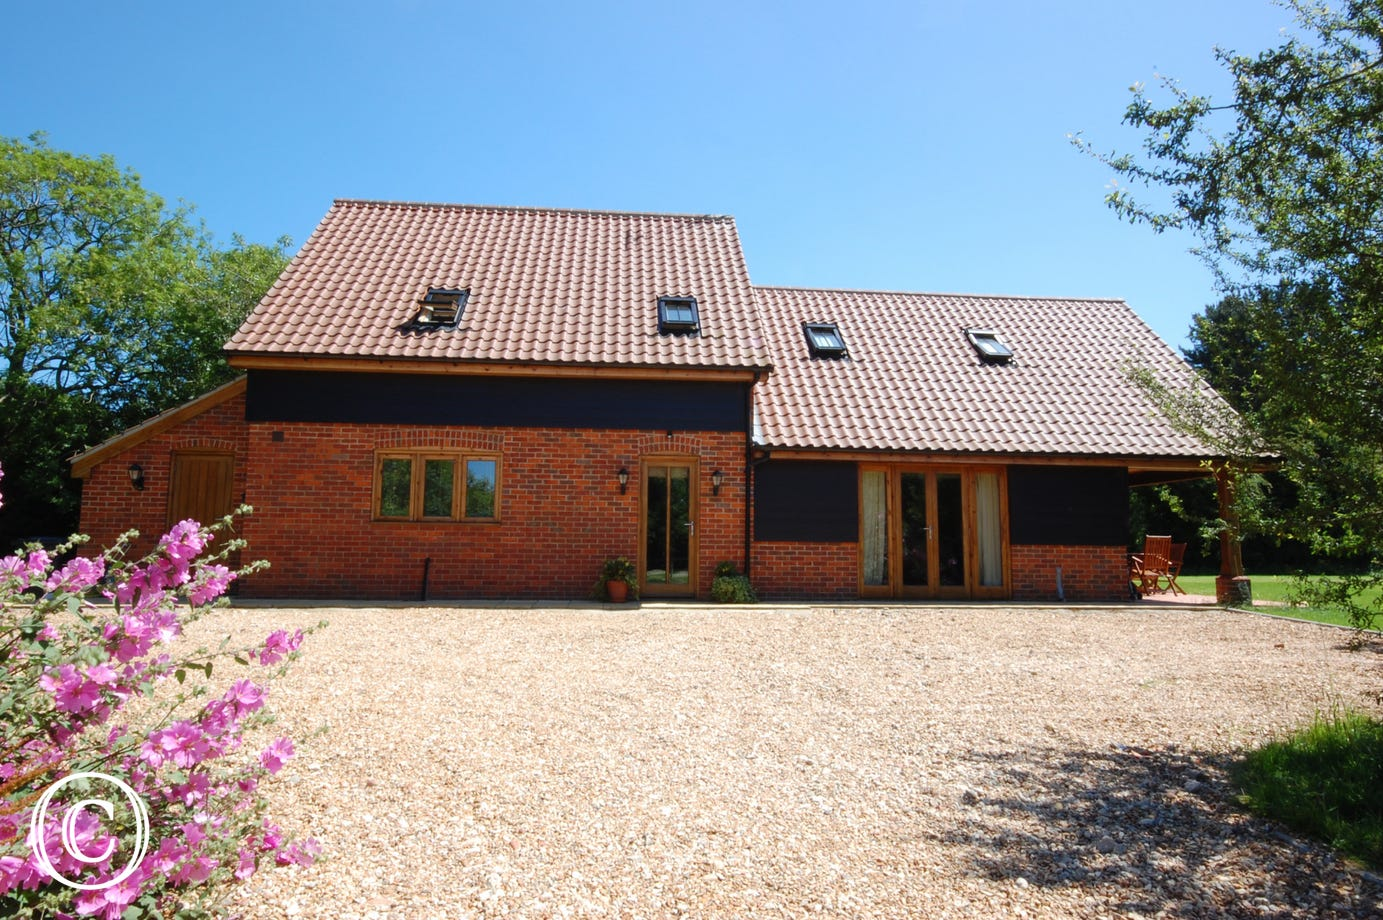 This is a beautifully presented detatched family house situated in a quiet and very private woodland setting. The house was built in 2006 in a barn conversion style